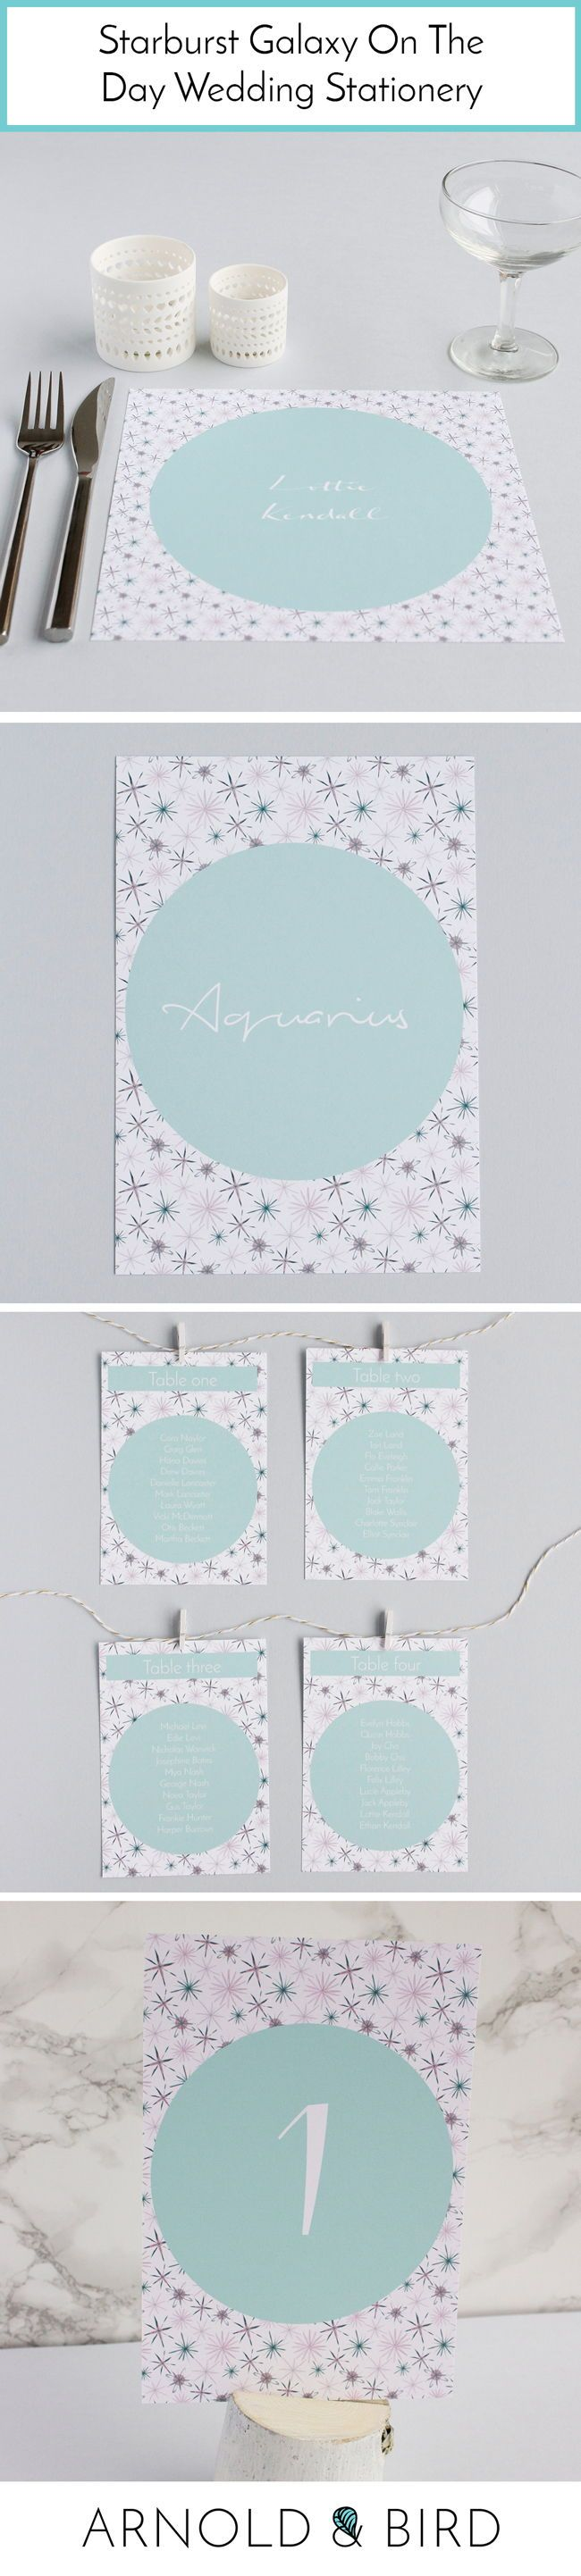 Starburst Galaxy Personalised On The Day Wedding Stationery - Placemat and alternative place name & card, table plan, table numbers and name by Arnold & Bird. Unique personalized wedding stationery for your special day